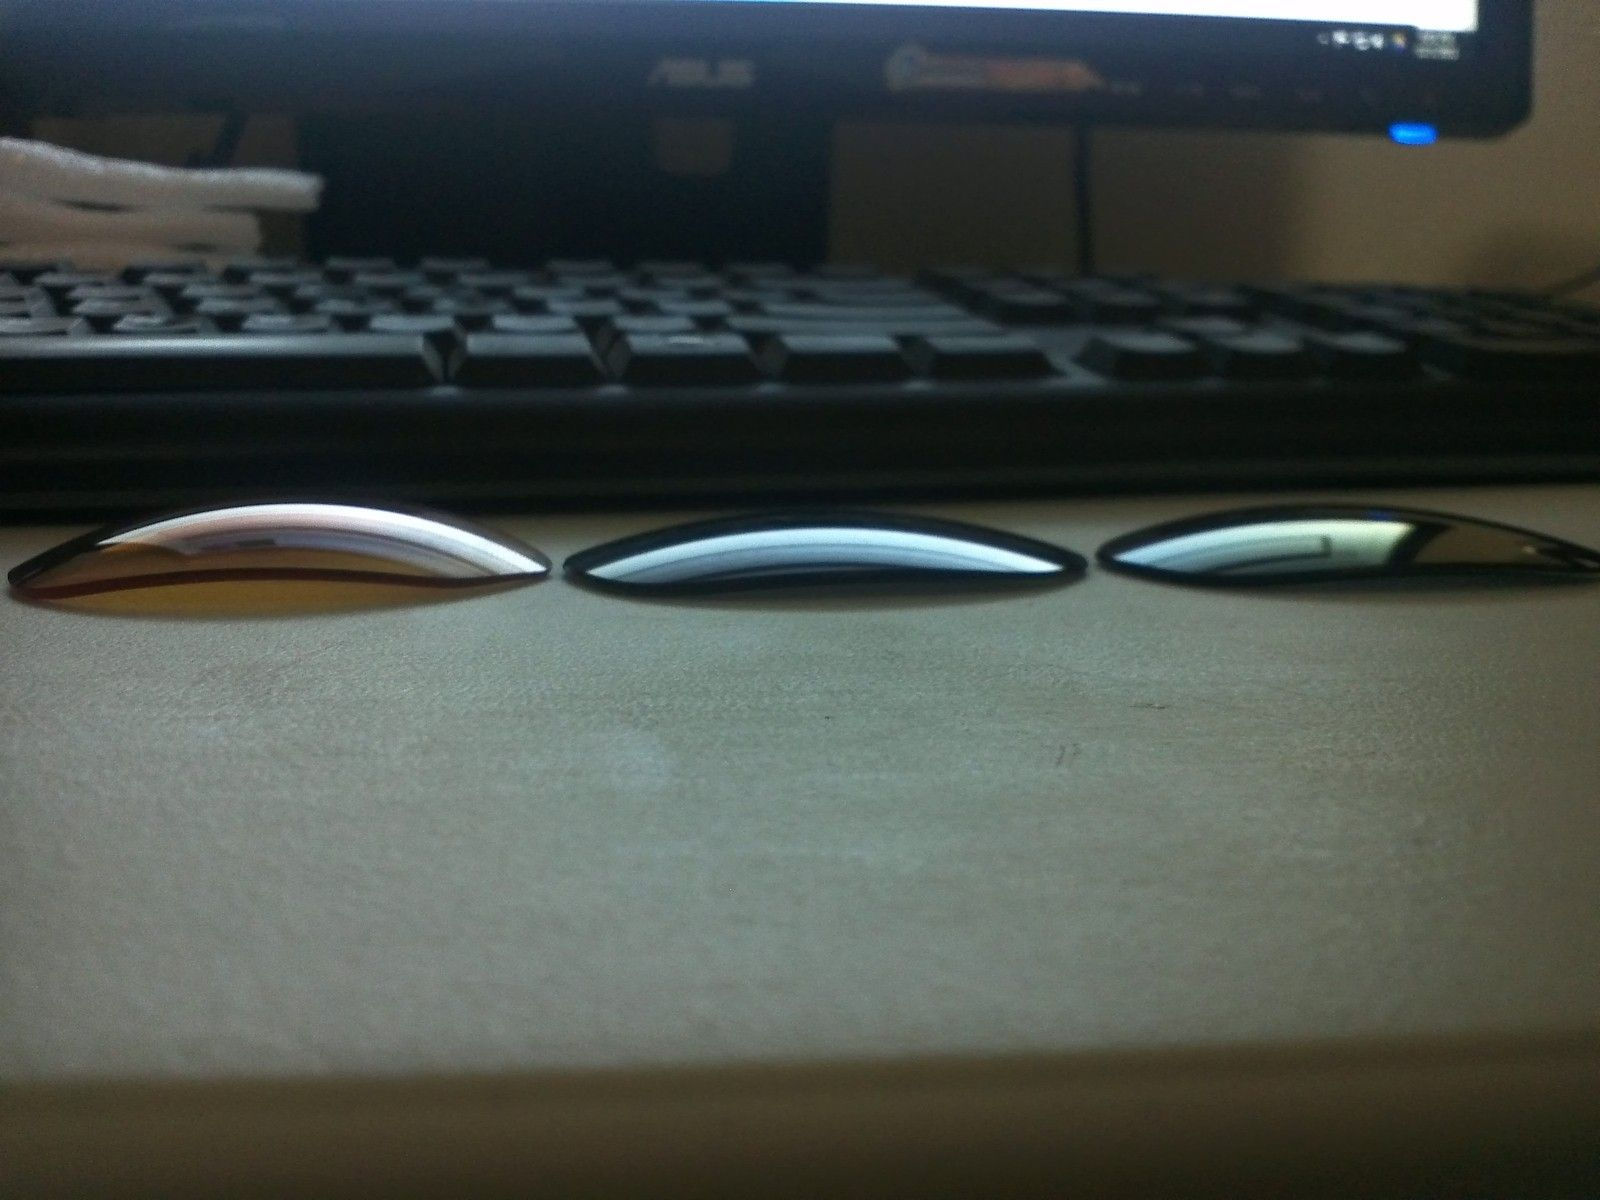 EyeKon Lenses For Oakley XX (Vintage) Purchase And Review (Final Update 12-31-12) - curve4j.jpg